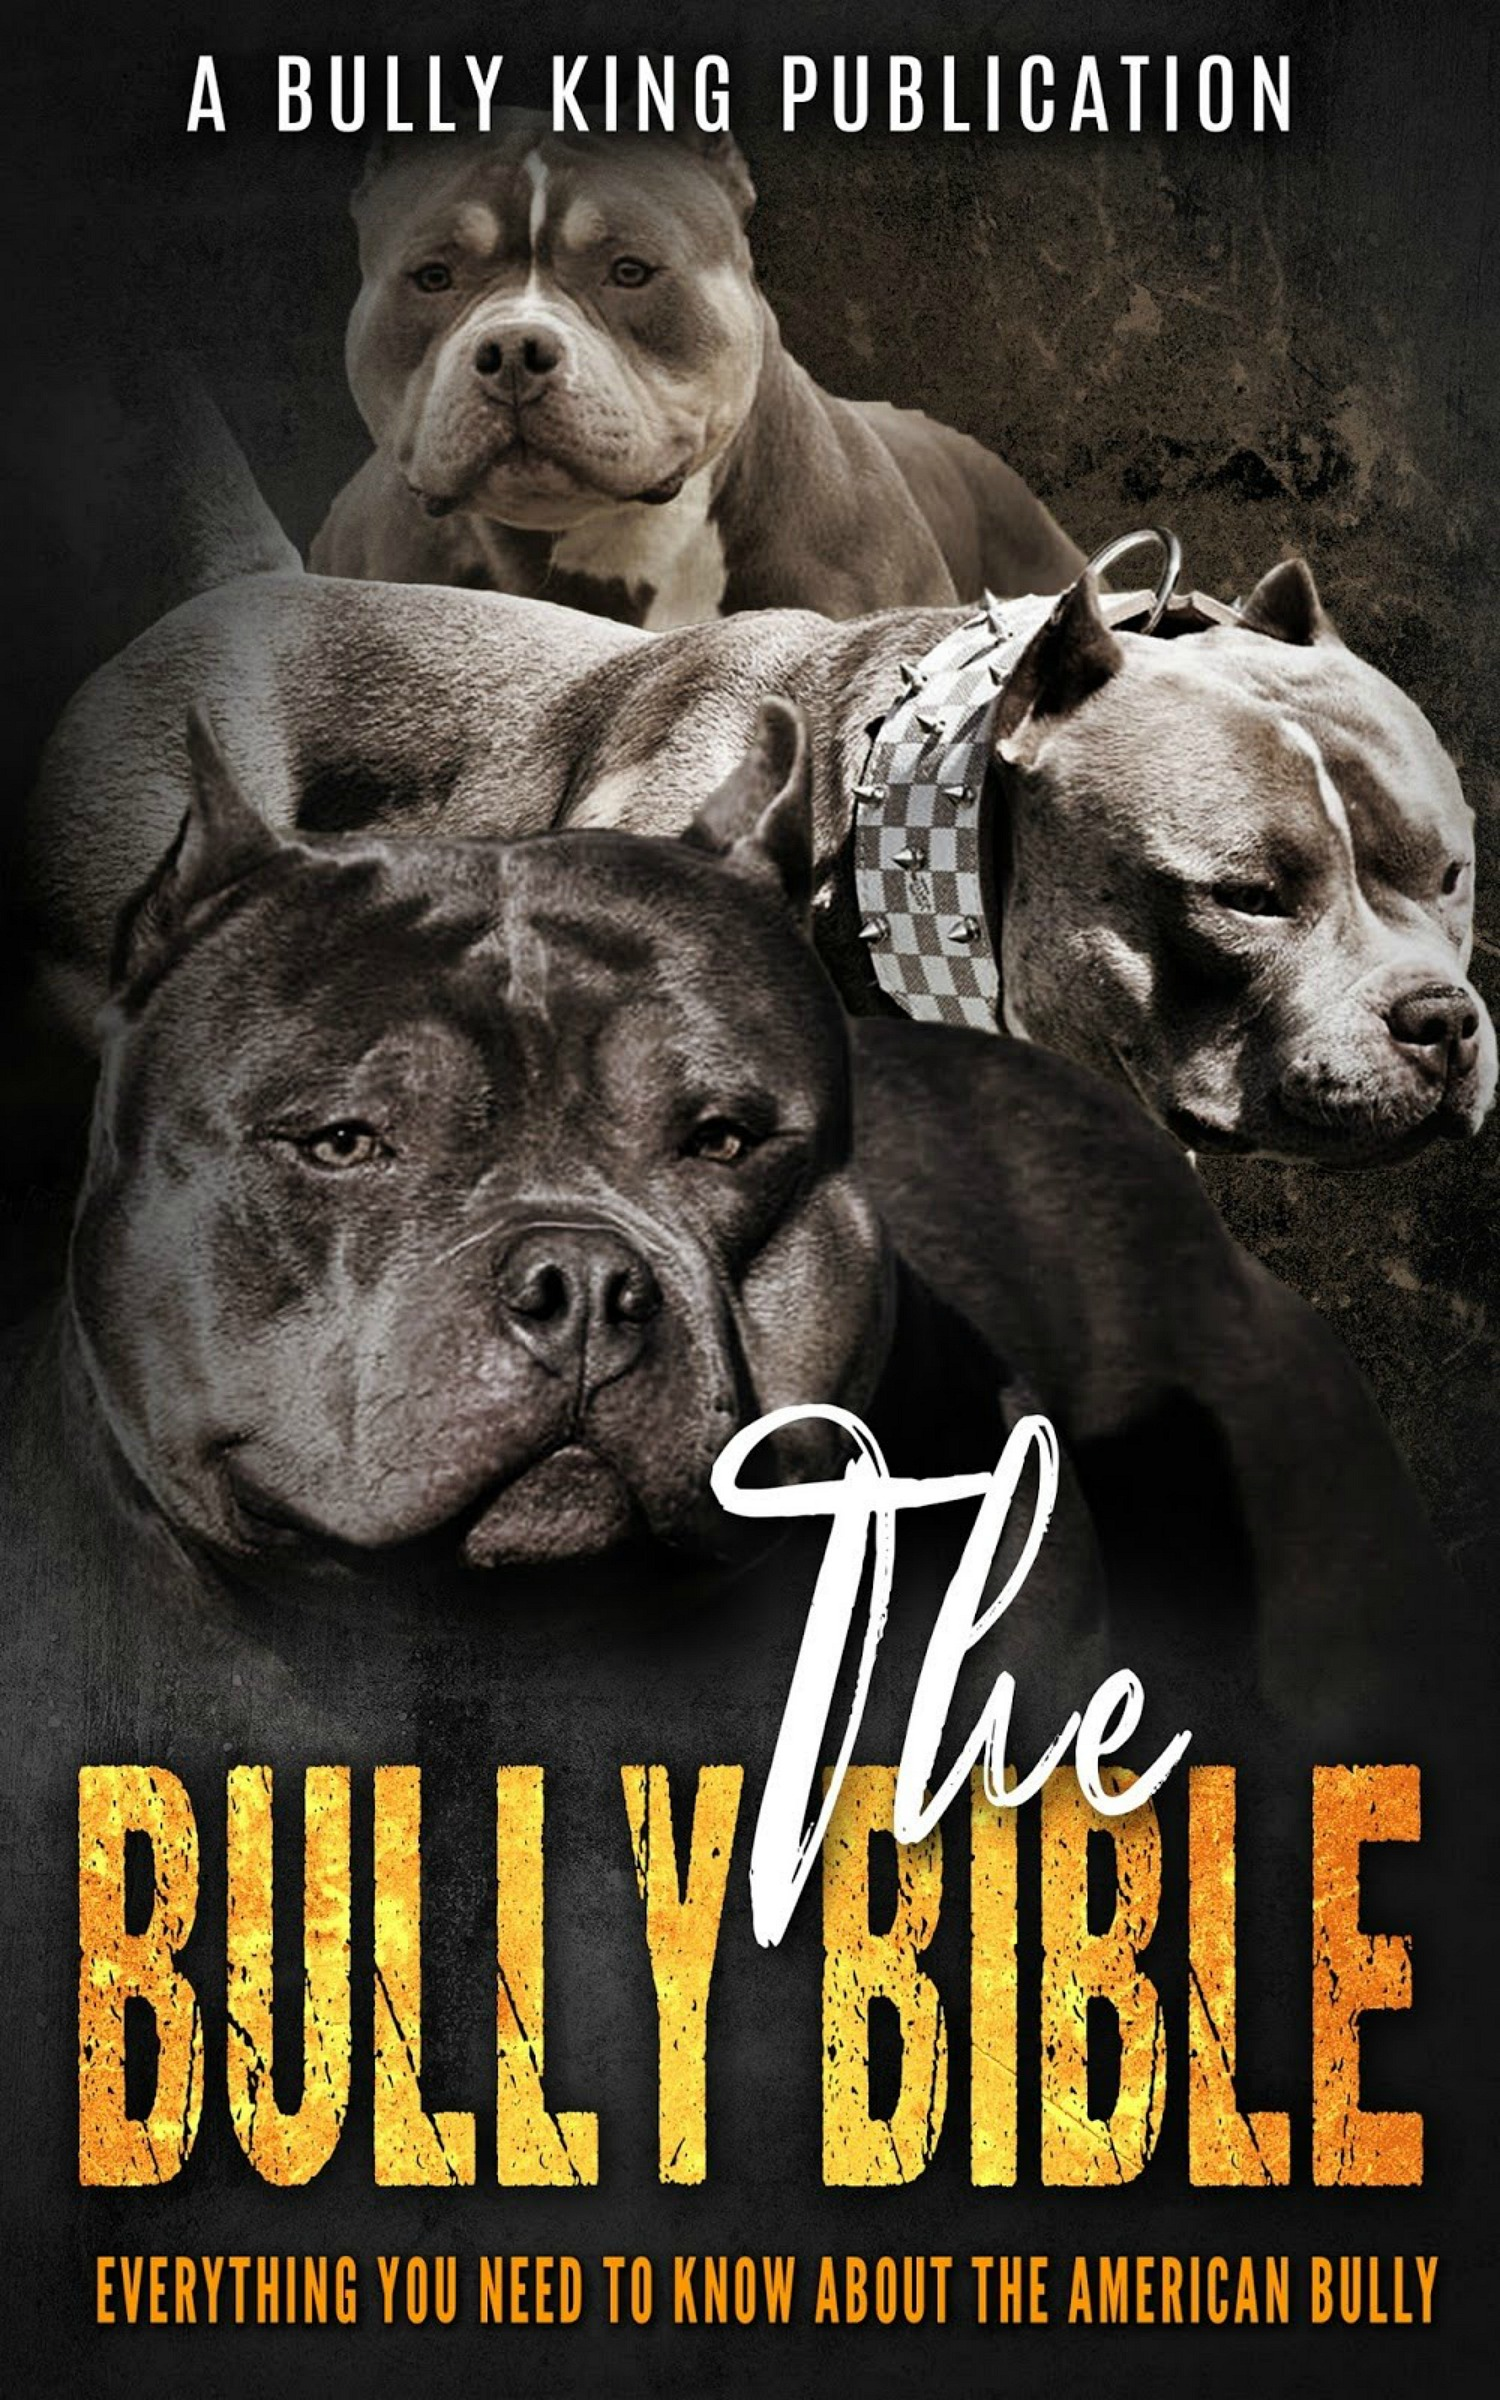 The Bully Bible: Everything You Need To Know About The American Bully, an  Ebook by Bully King Magazine